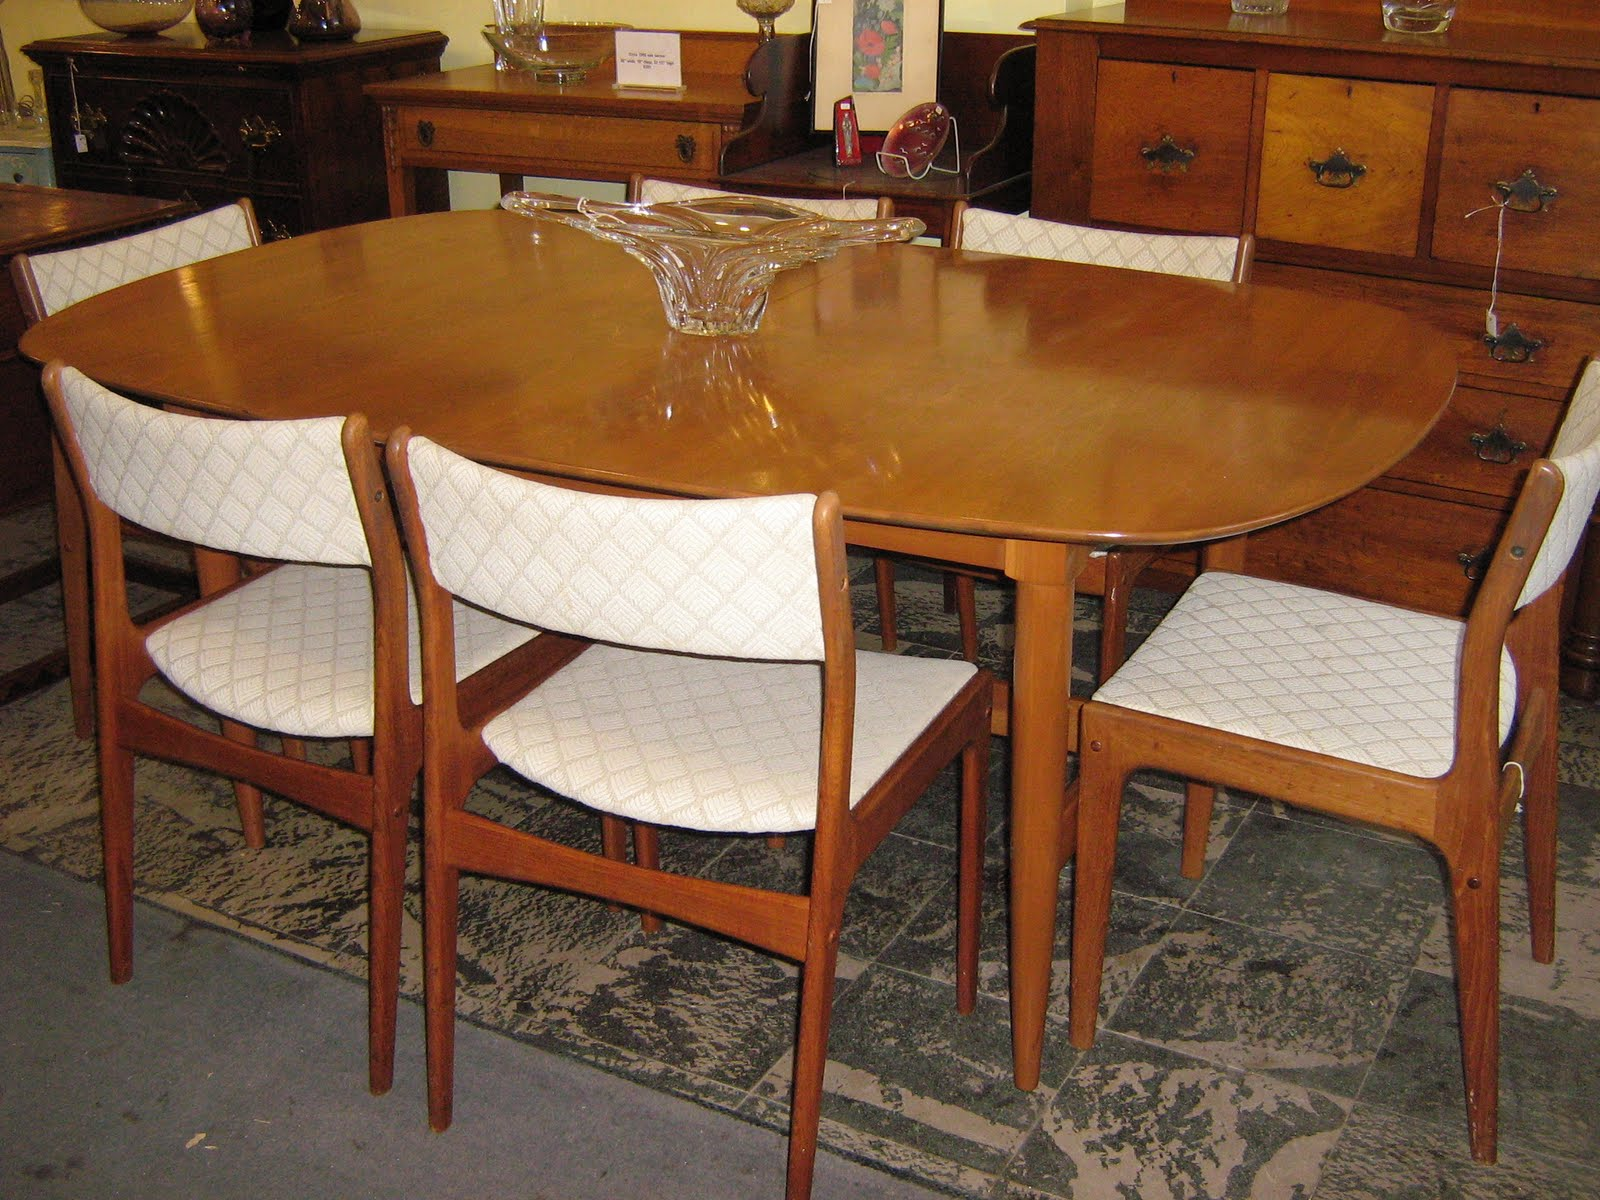 Danish modern dining room chairs - 1950 S Danish Teak Dining Set Signed